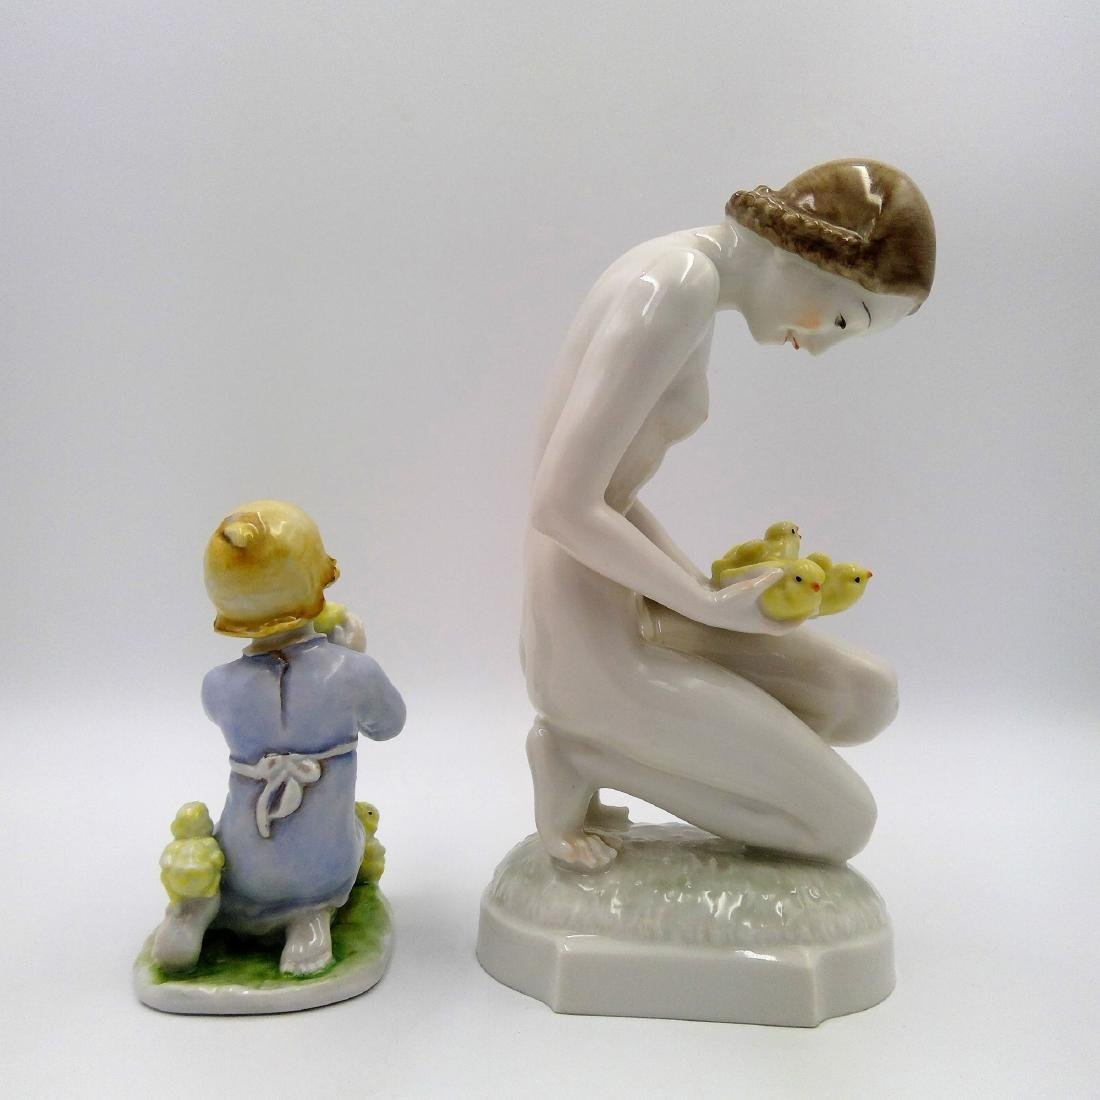 GROUP OF 2 ROSENTHAL & HUTSCHENREUTHER FIGURINES - 3